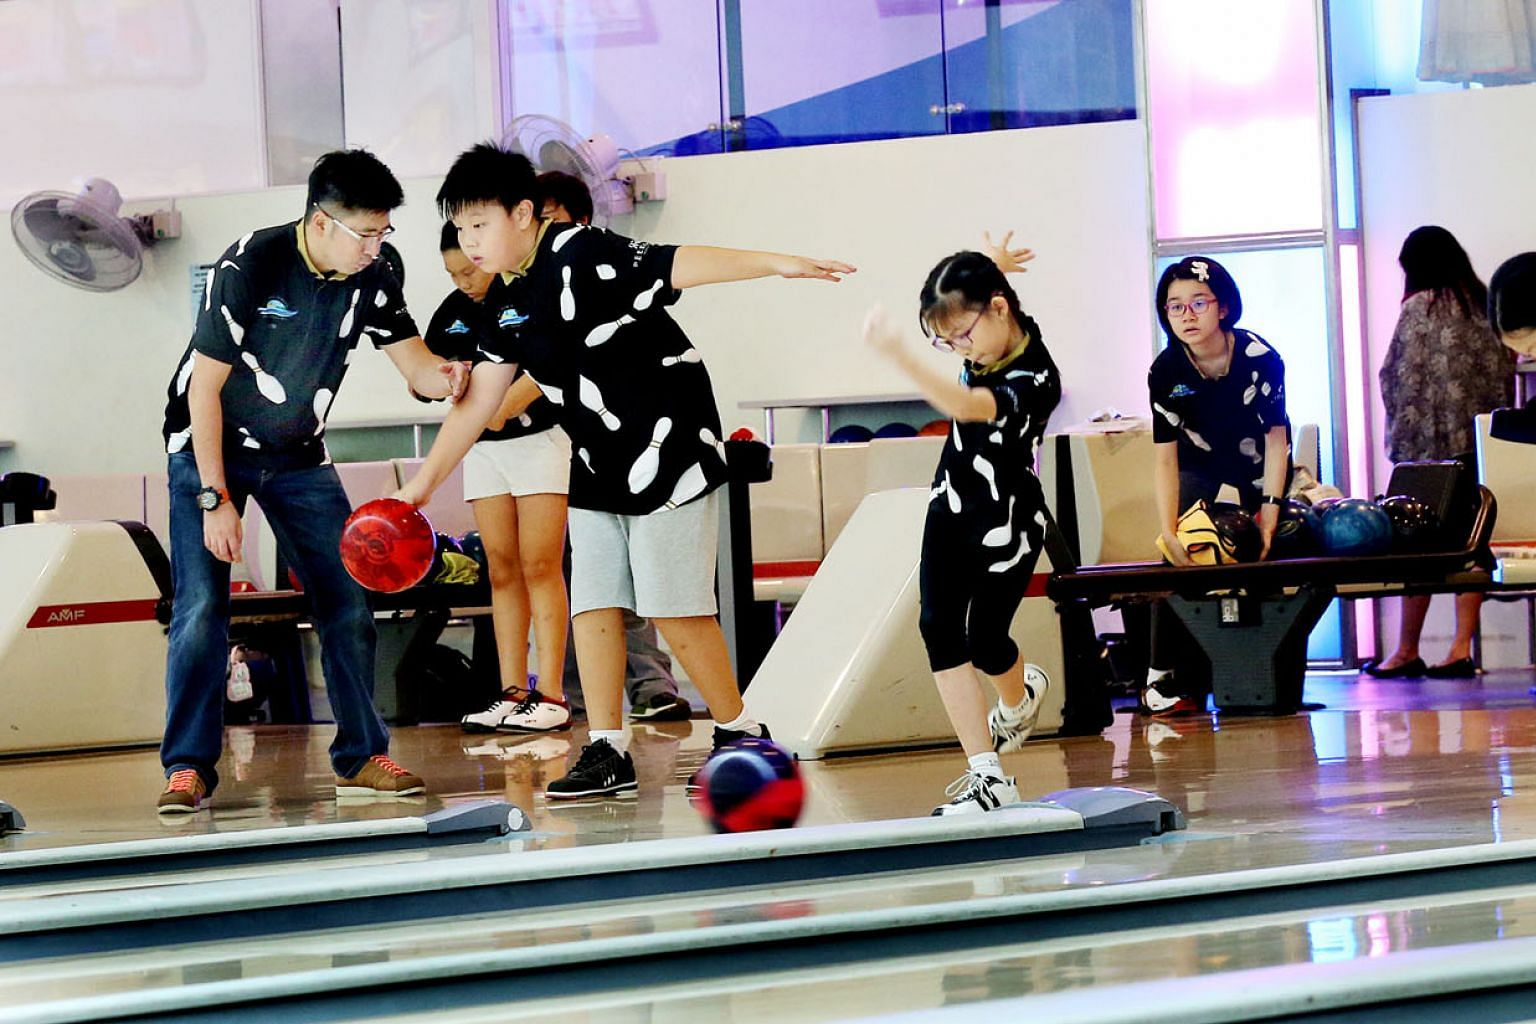 Ex-world champion bowler Remy Ong showing youngsters how to deliver the ball. He says ex-sportsmen are aware not only of the technical skills needed to succeed but also the mental strength required.